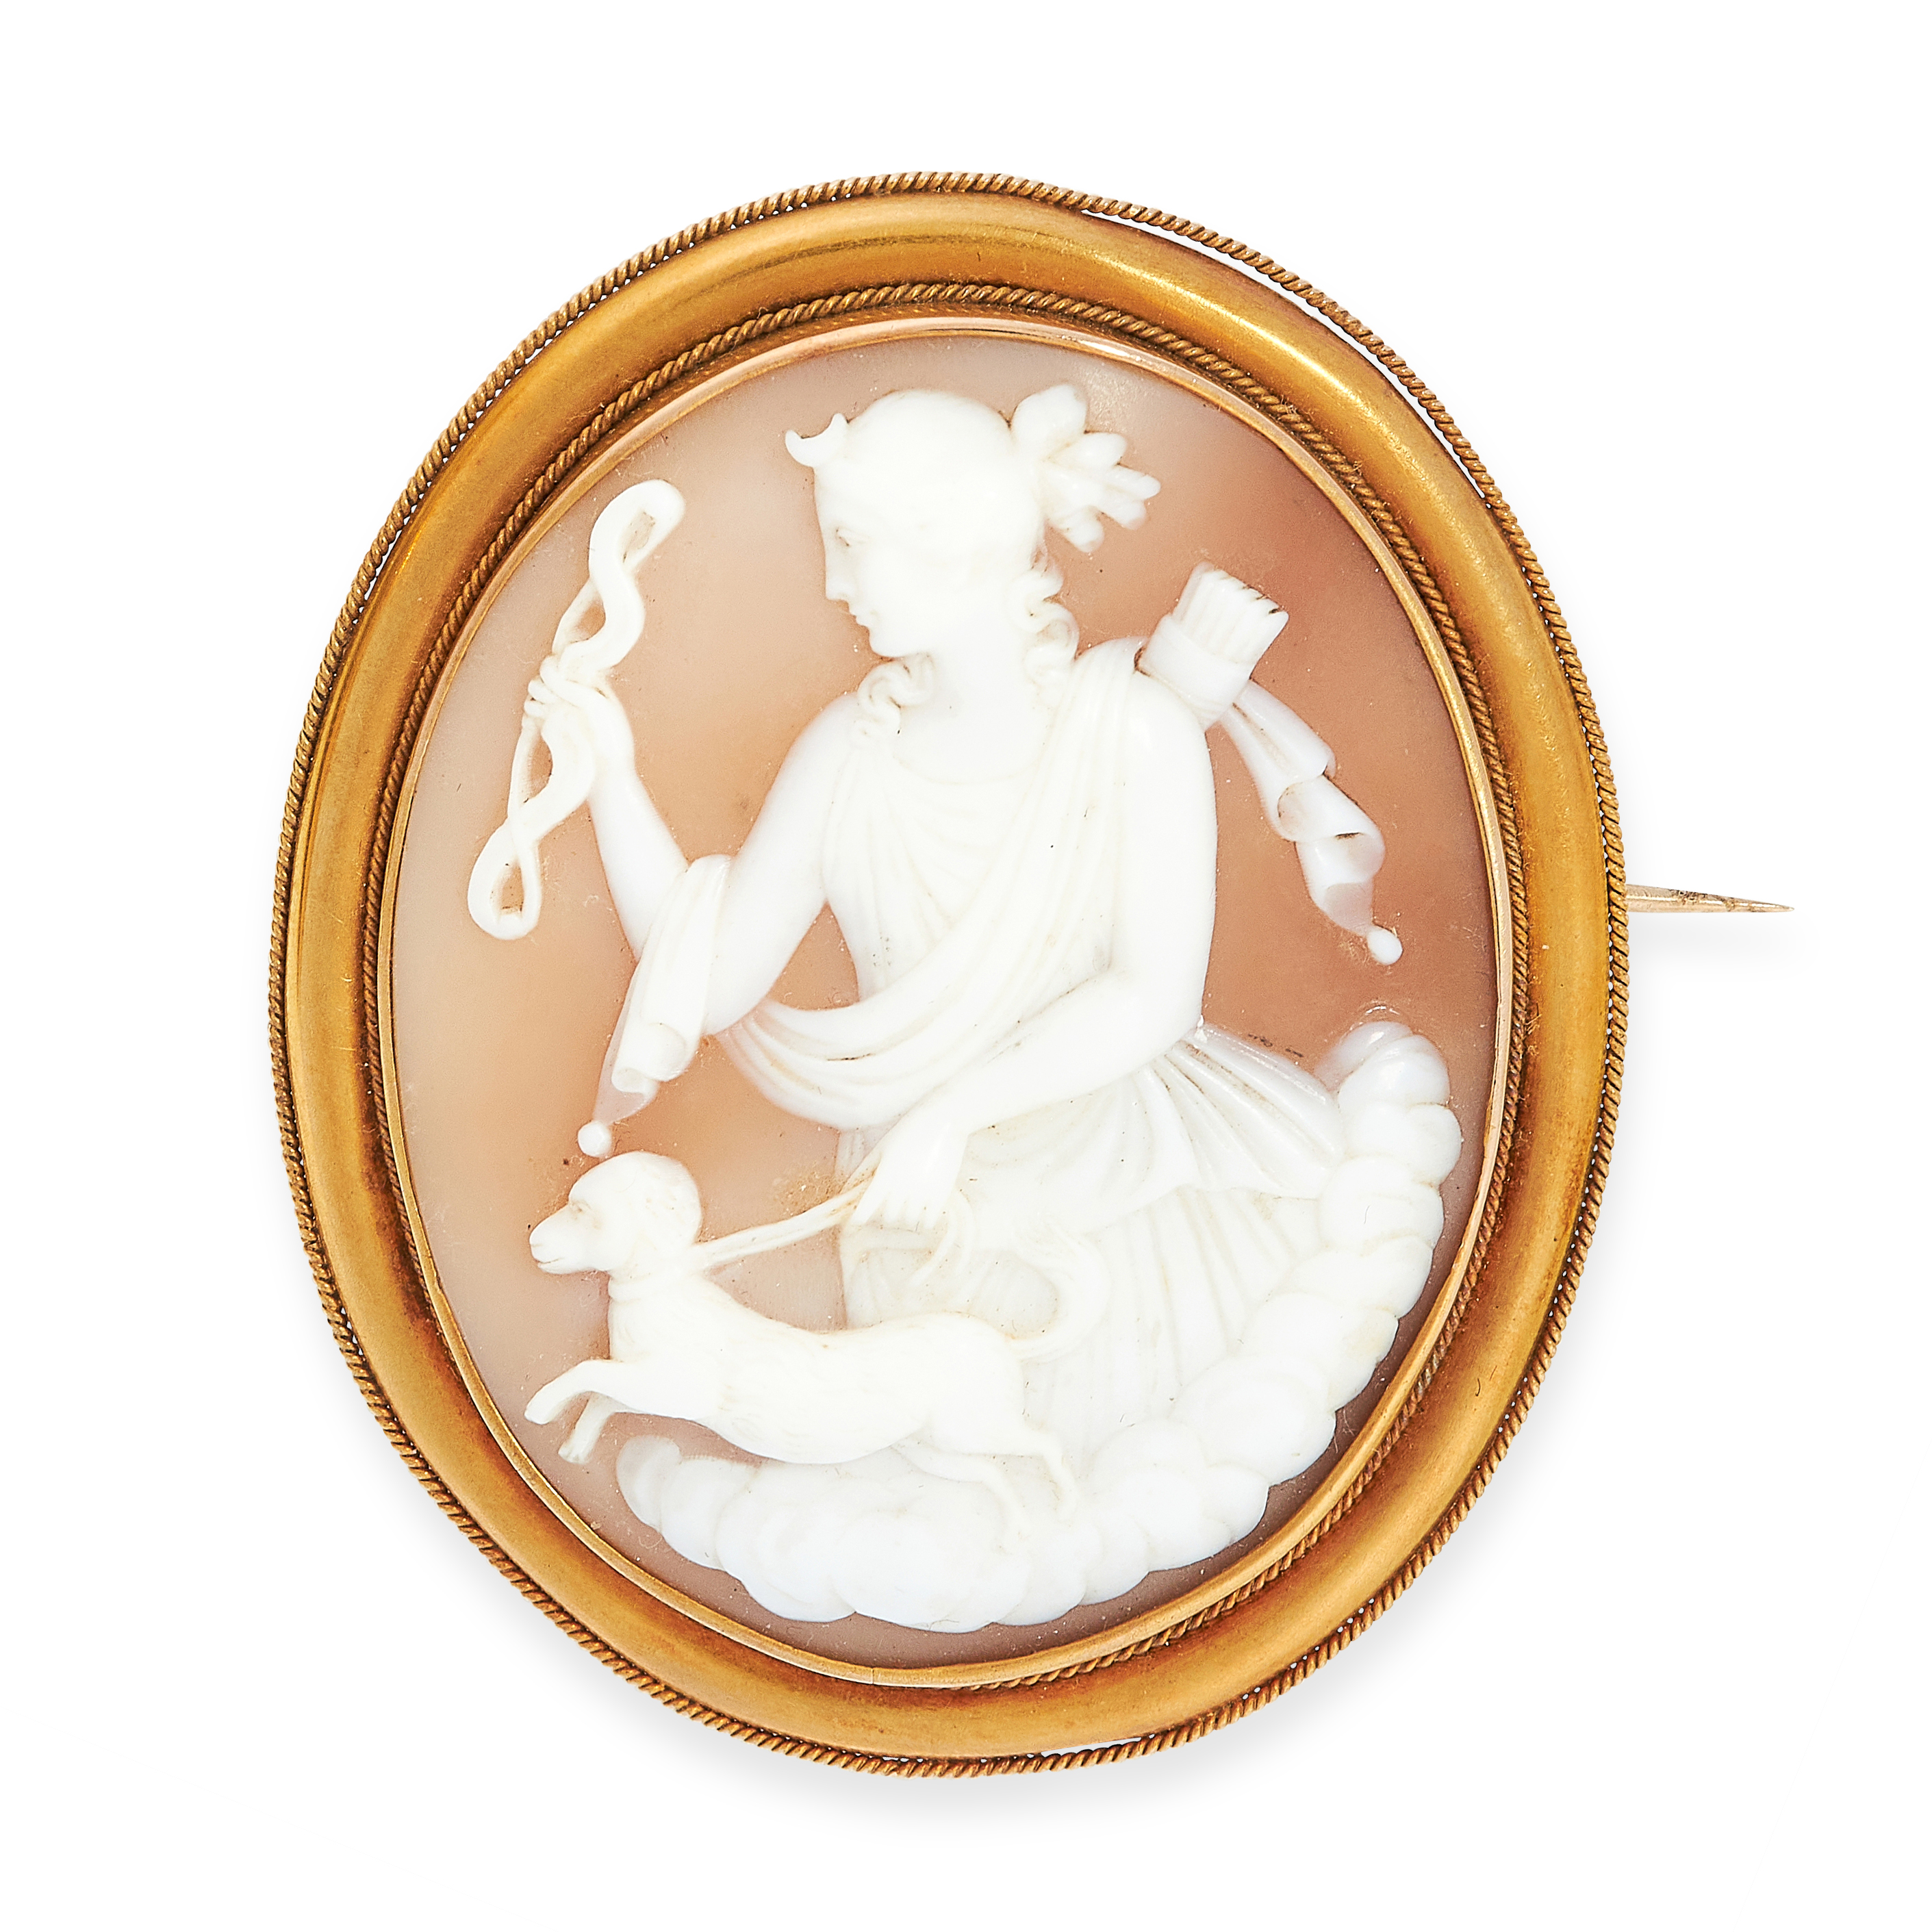 ANTIQUE CAMEO BROOCH in yellow gold, set with a carved shell cameo depicting a classical lady with a